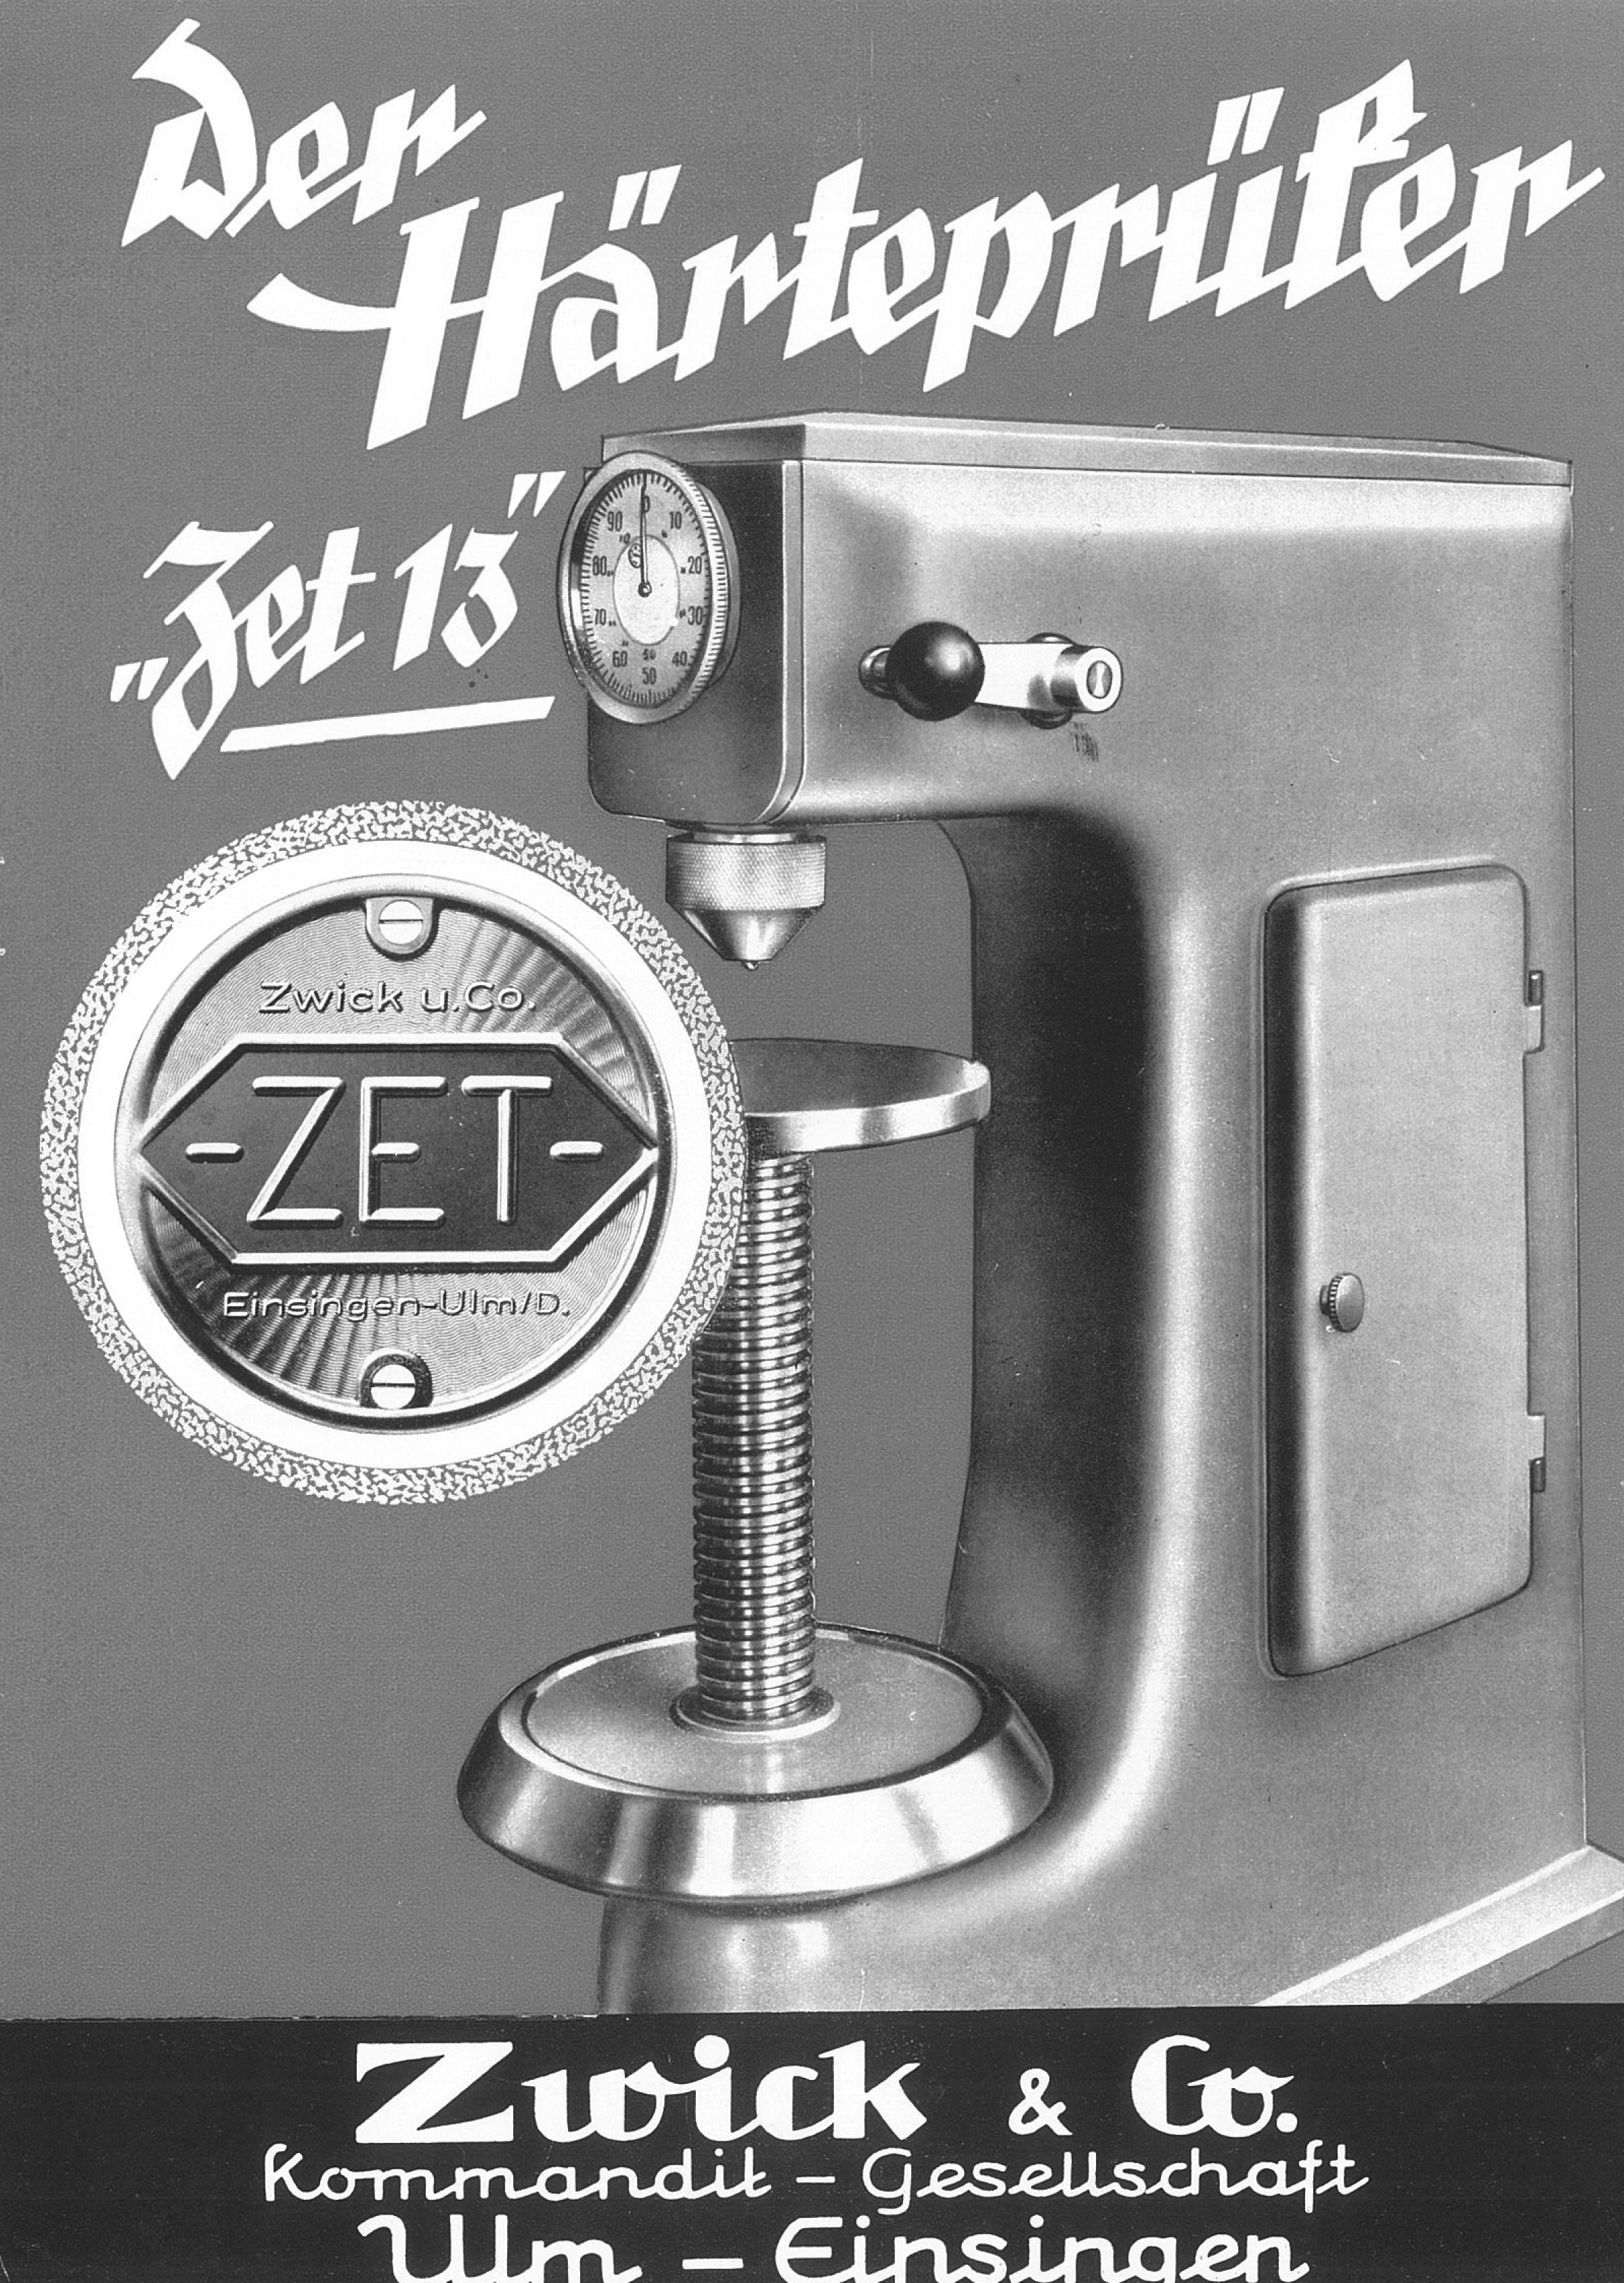 1950s hardness tester from Zwick